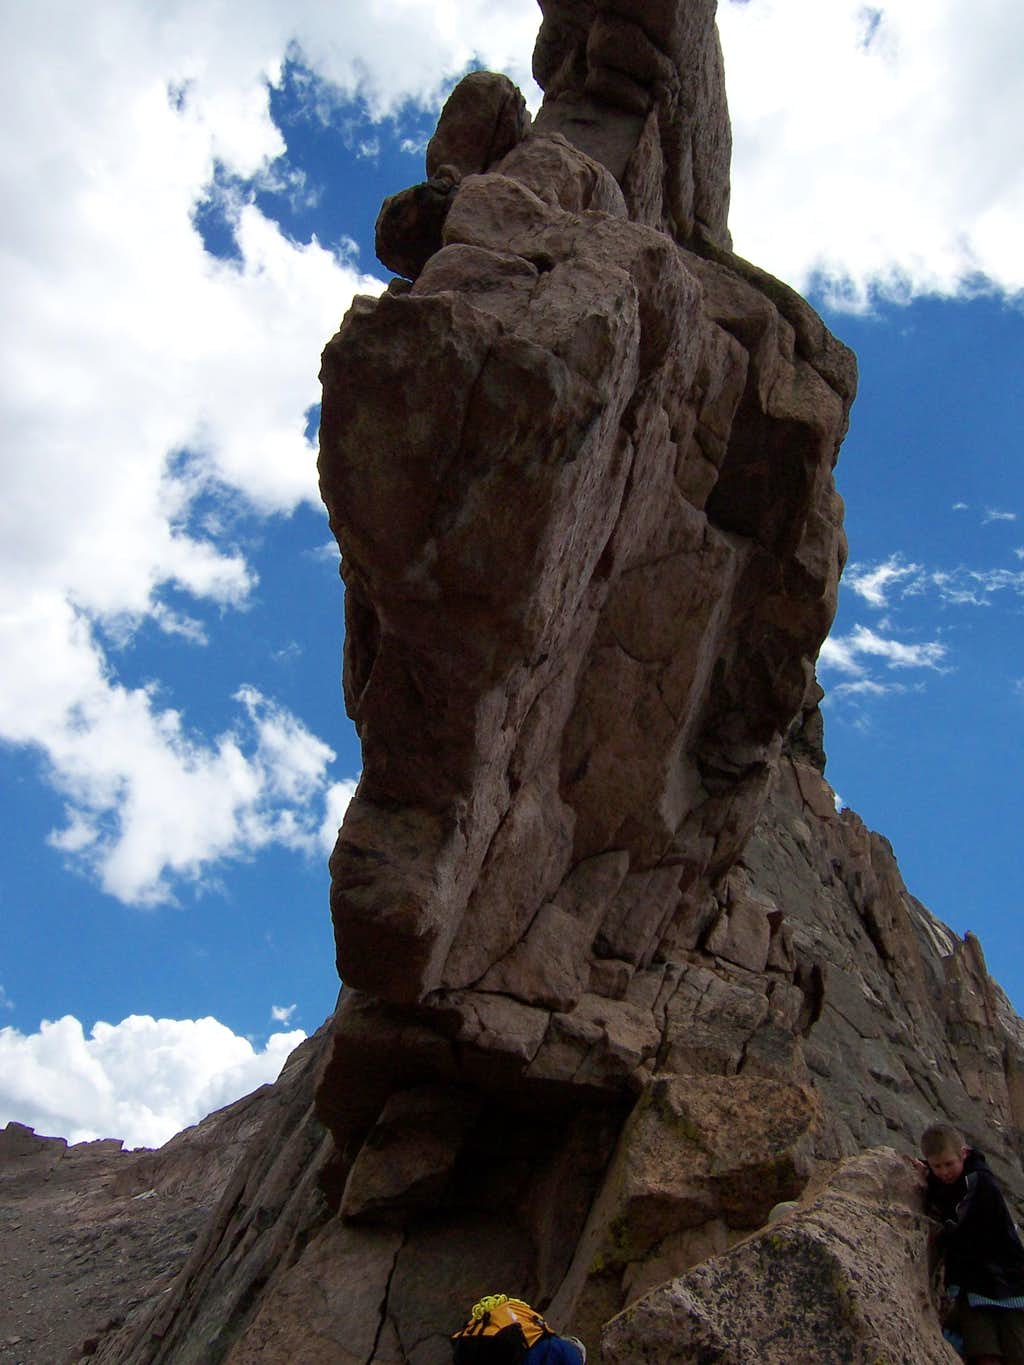 Looking Up at Keyhole Rock Formation